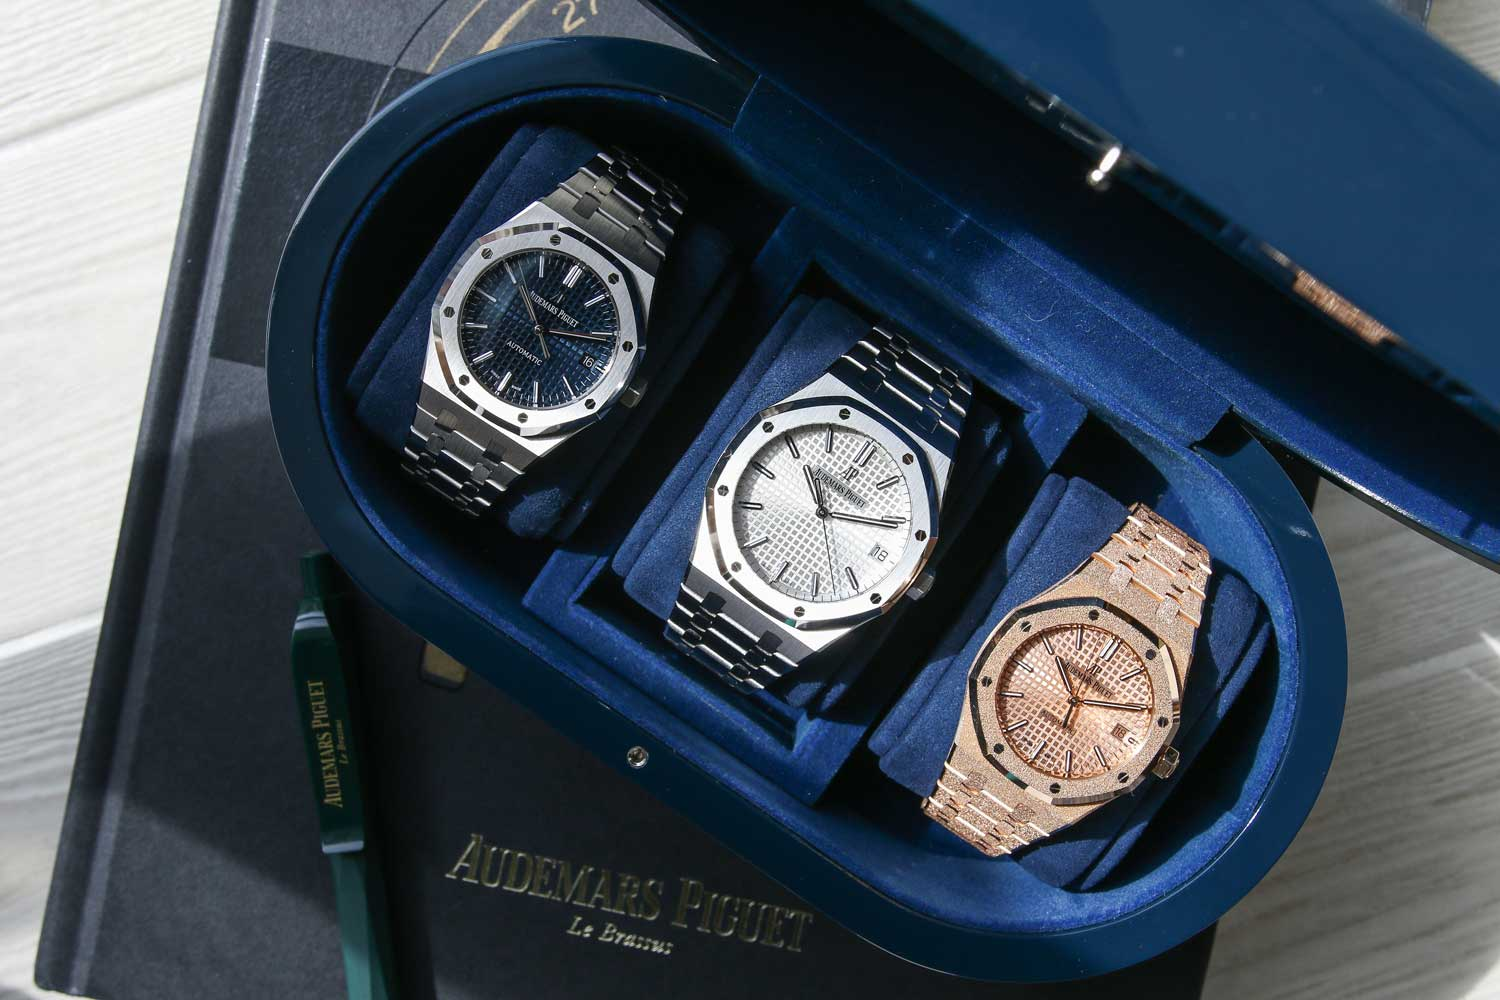 Size comparison between the ref. 15450ST (37mm,left), ref. 15500ST (41mm,middle), and ref. 15454OR (37mm,right) (©Revolution)